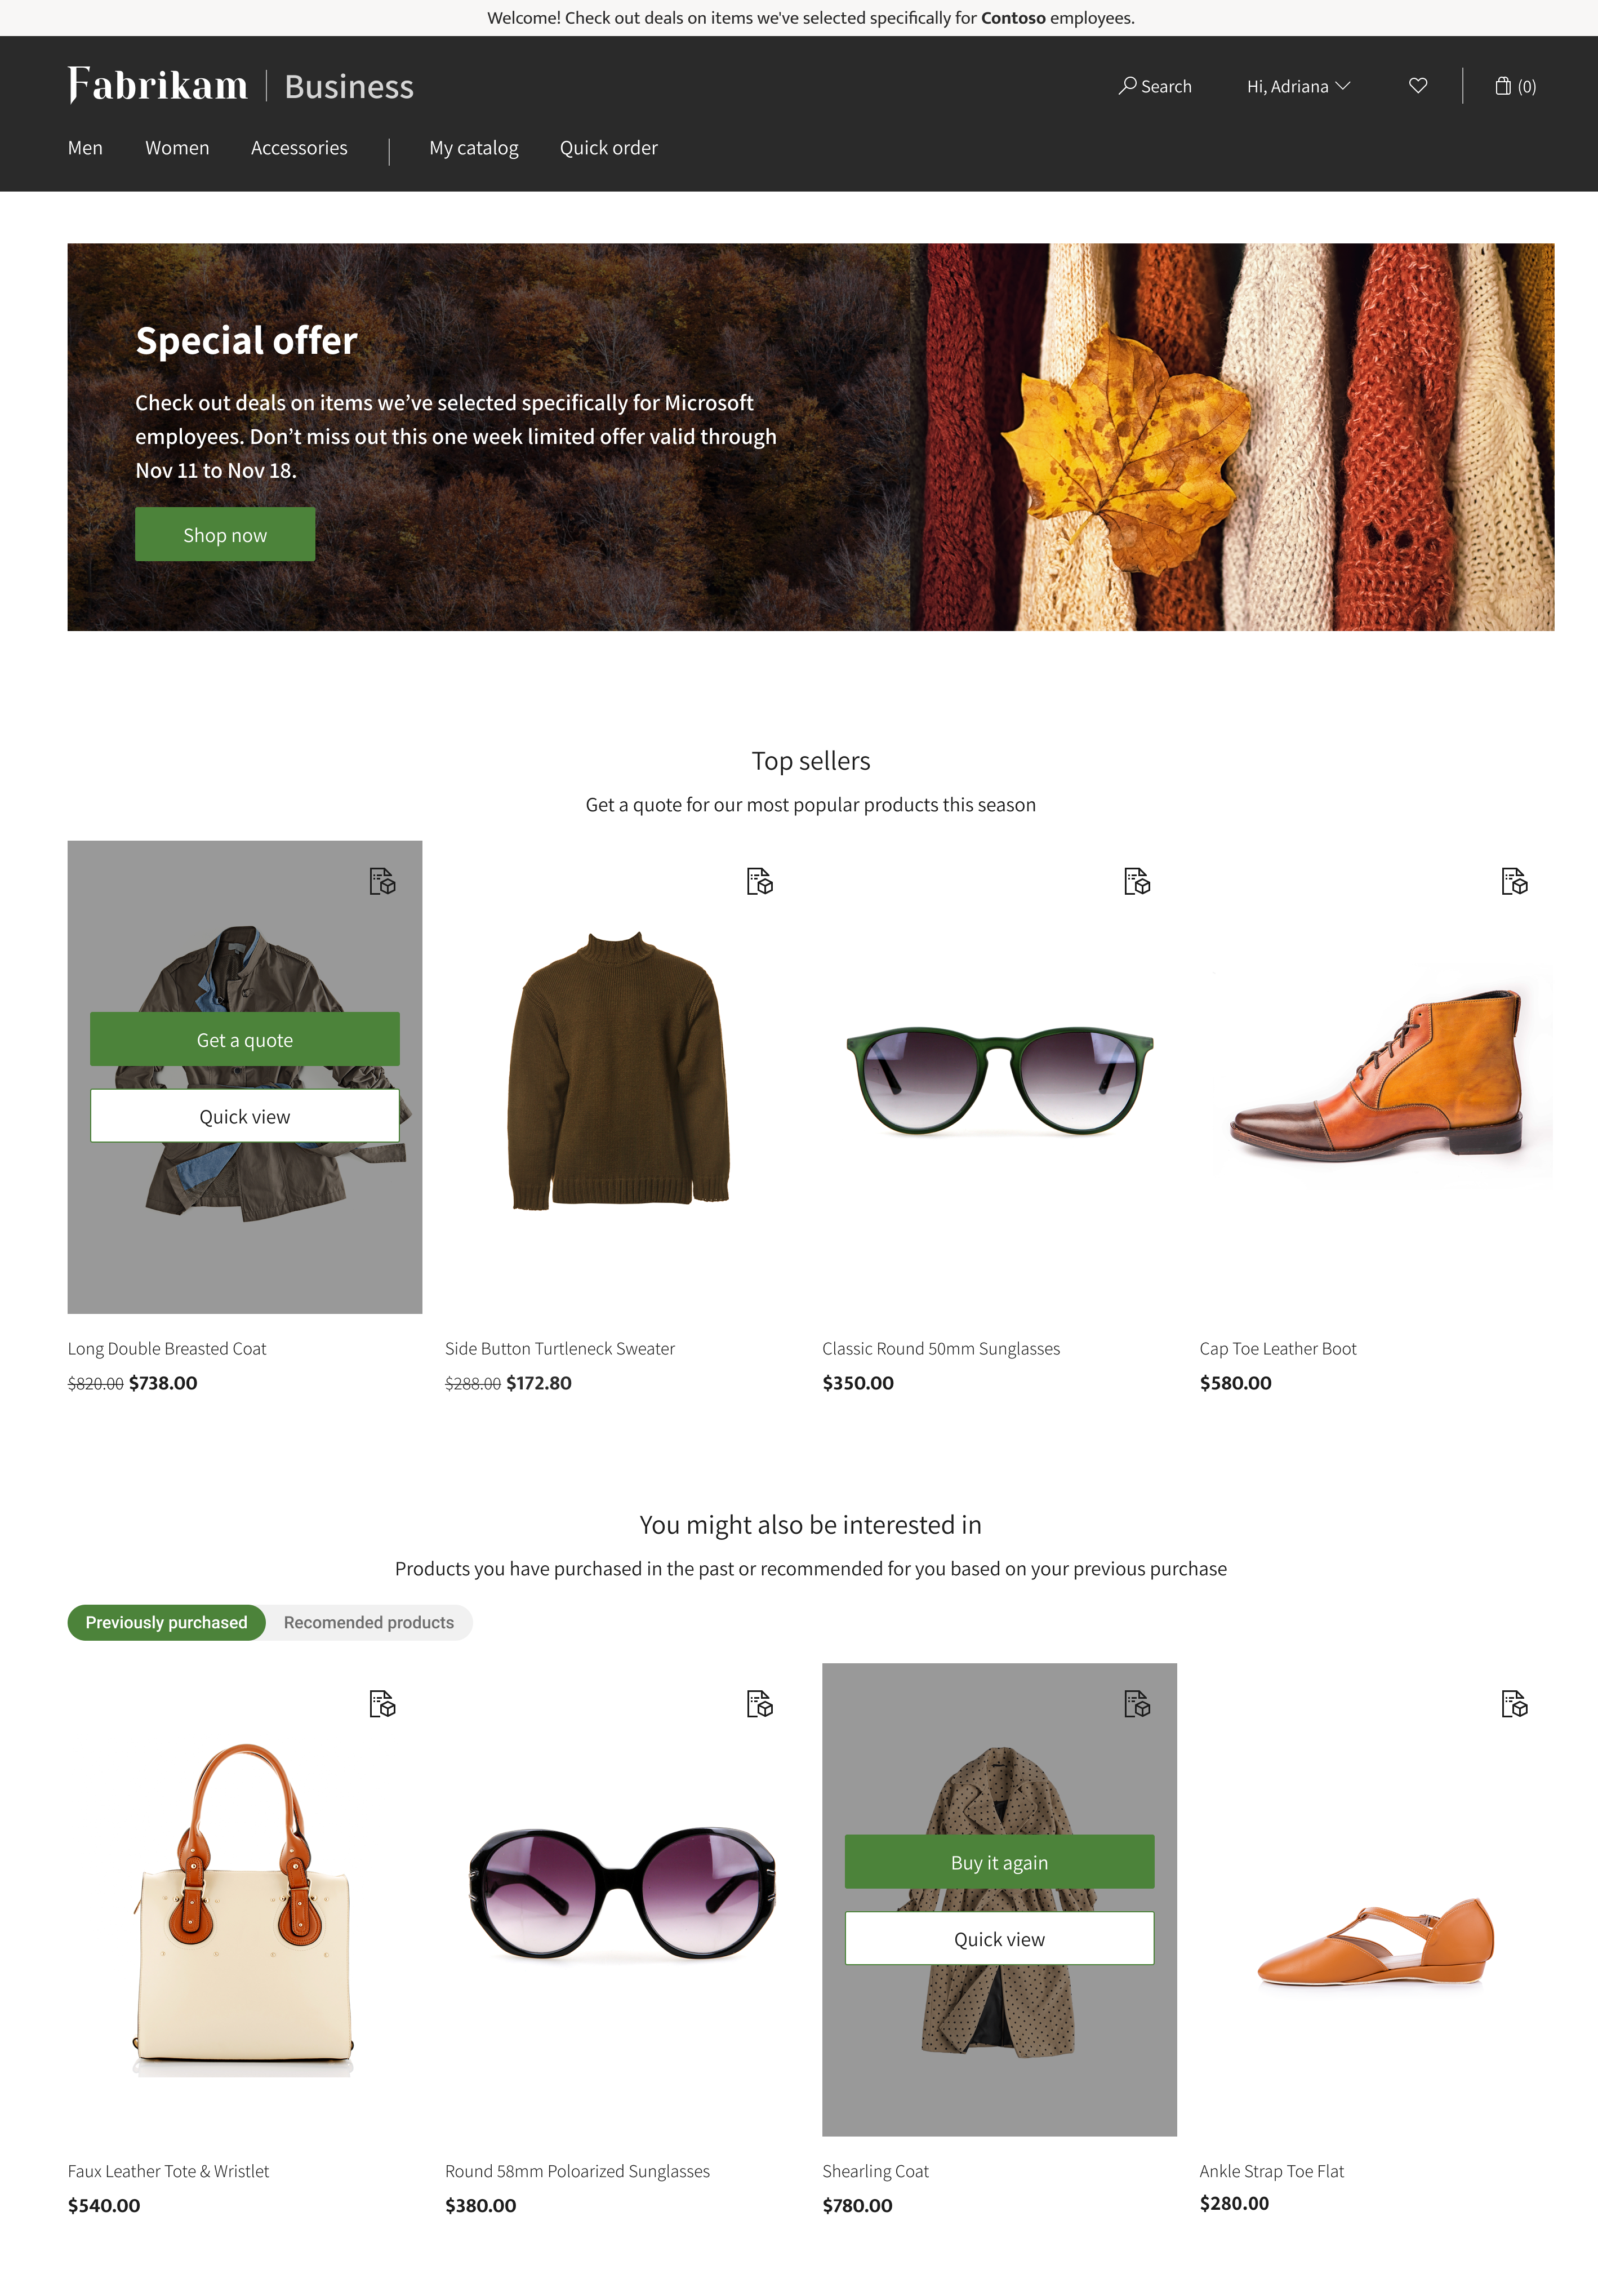 An e-commerce page with Fabrikam Business header and Special offer banner at the top. Product images are showcased with headers of